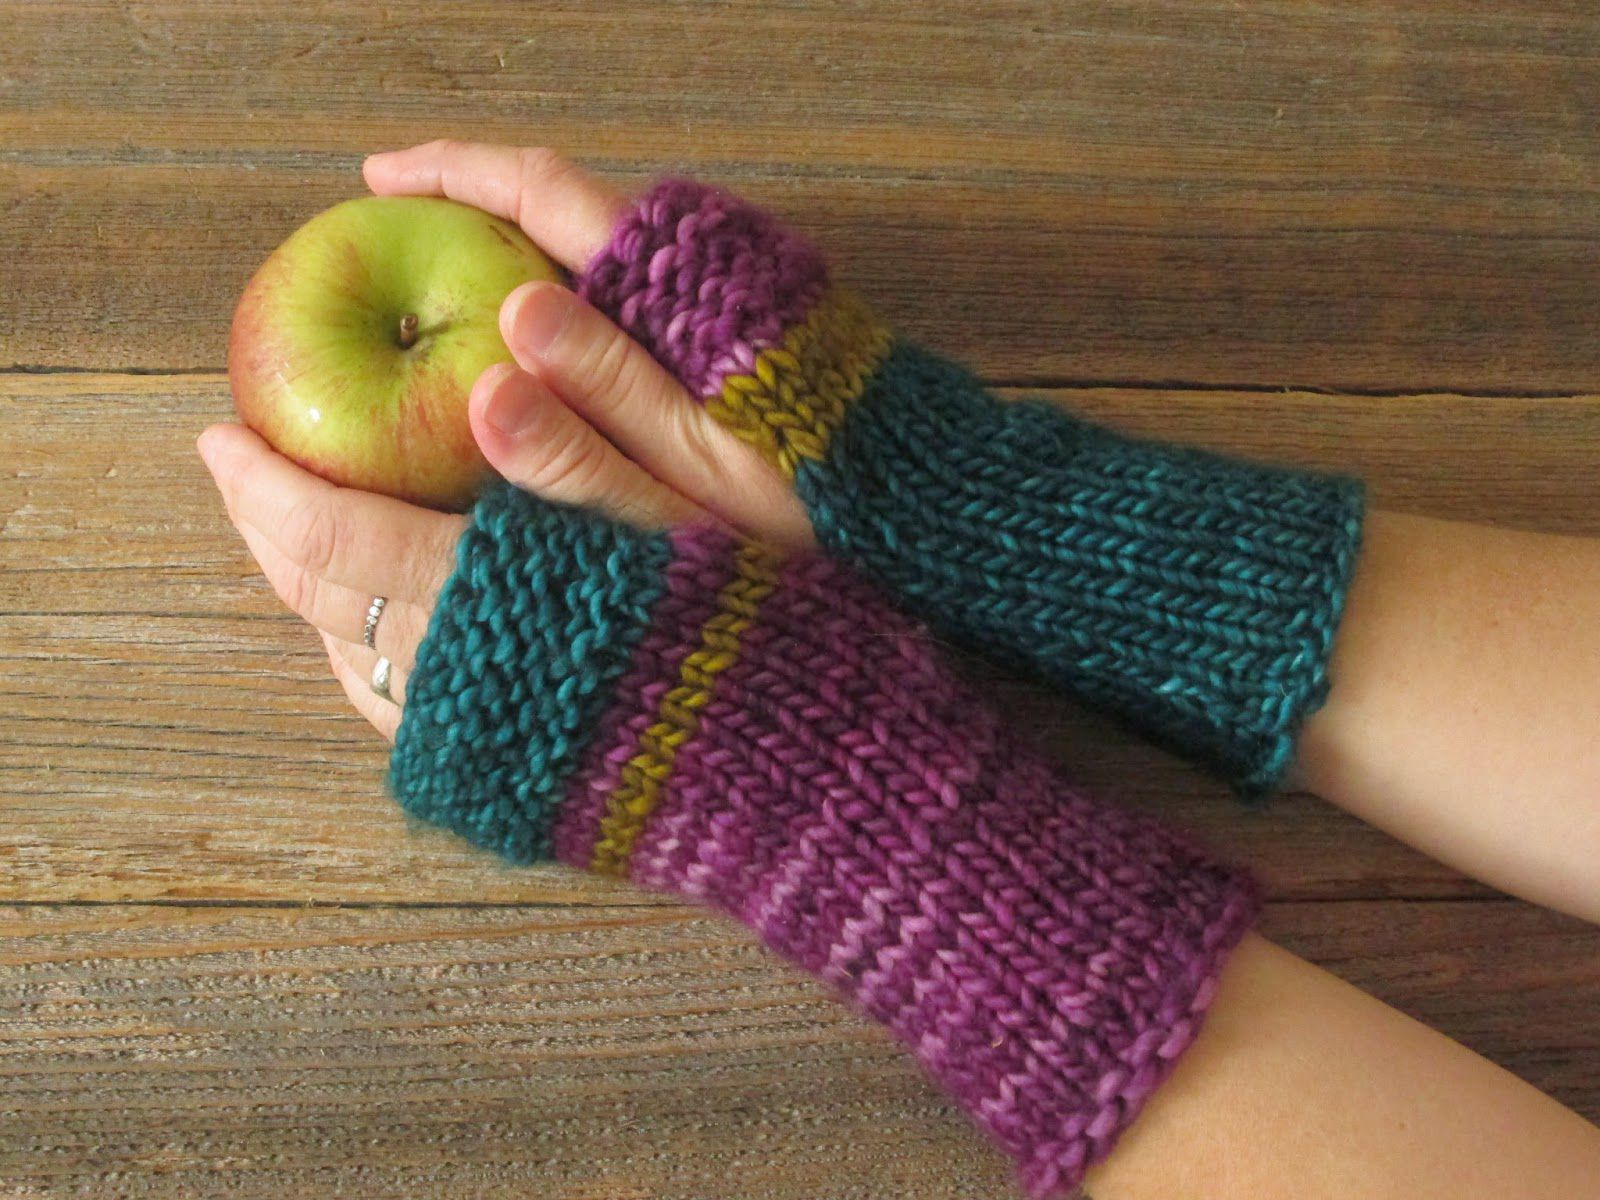 https://pollyfoofoo.blogspot.com/2014/09/mrs-fitz-mini-mitts.html